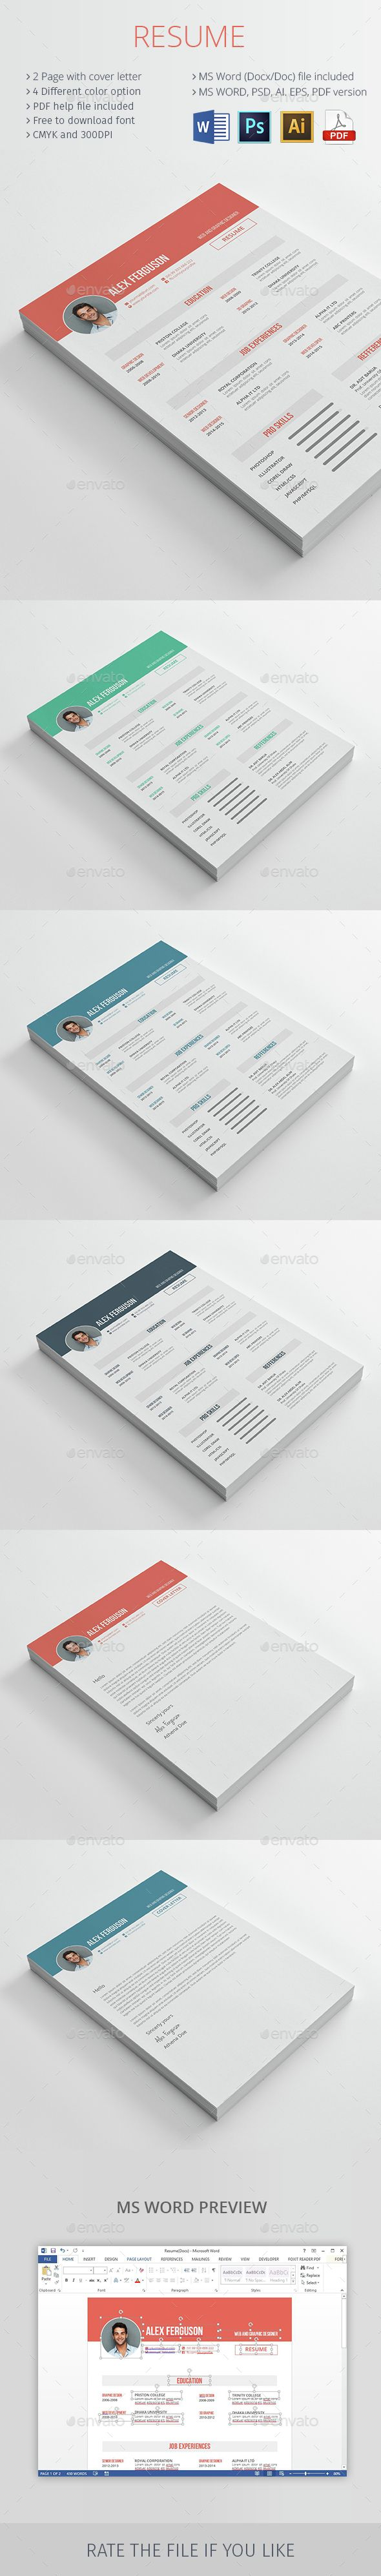 Resume CV — Photoshop PSD #professional resume #rongmistiry • Available here → https://graphicriver.net/item/resume-cv/15325144?ref=pxcr